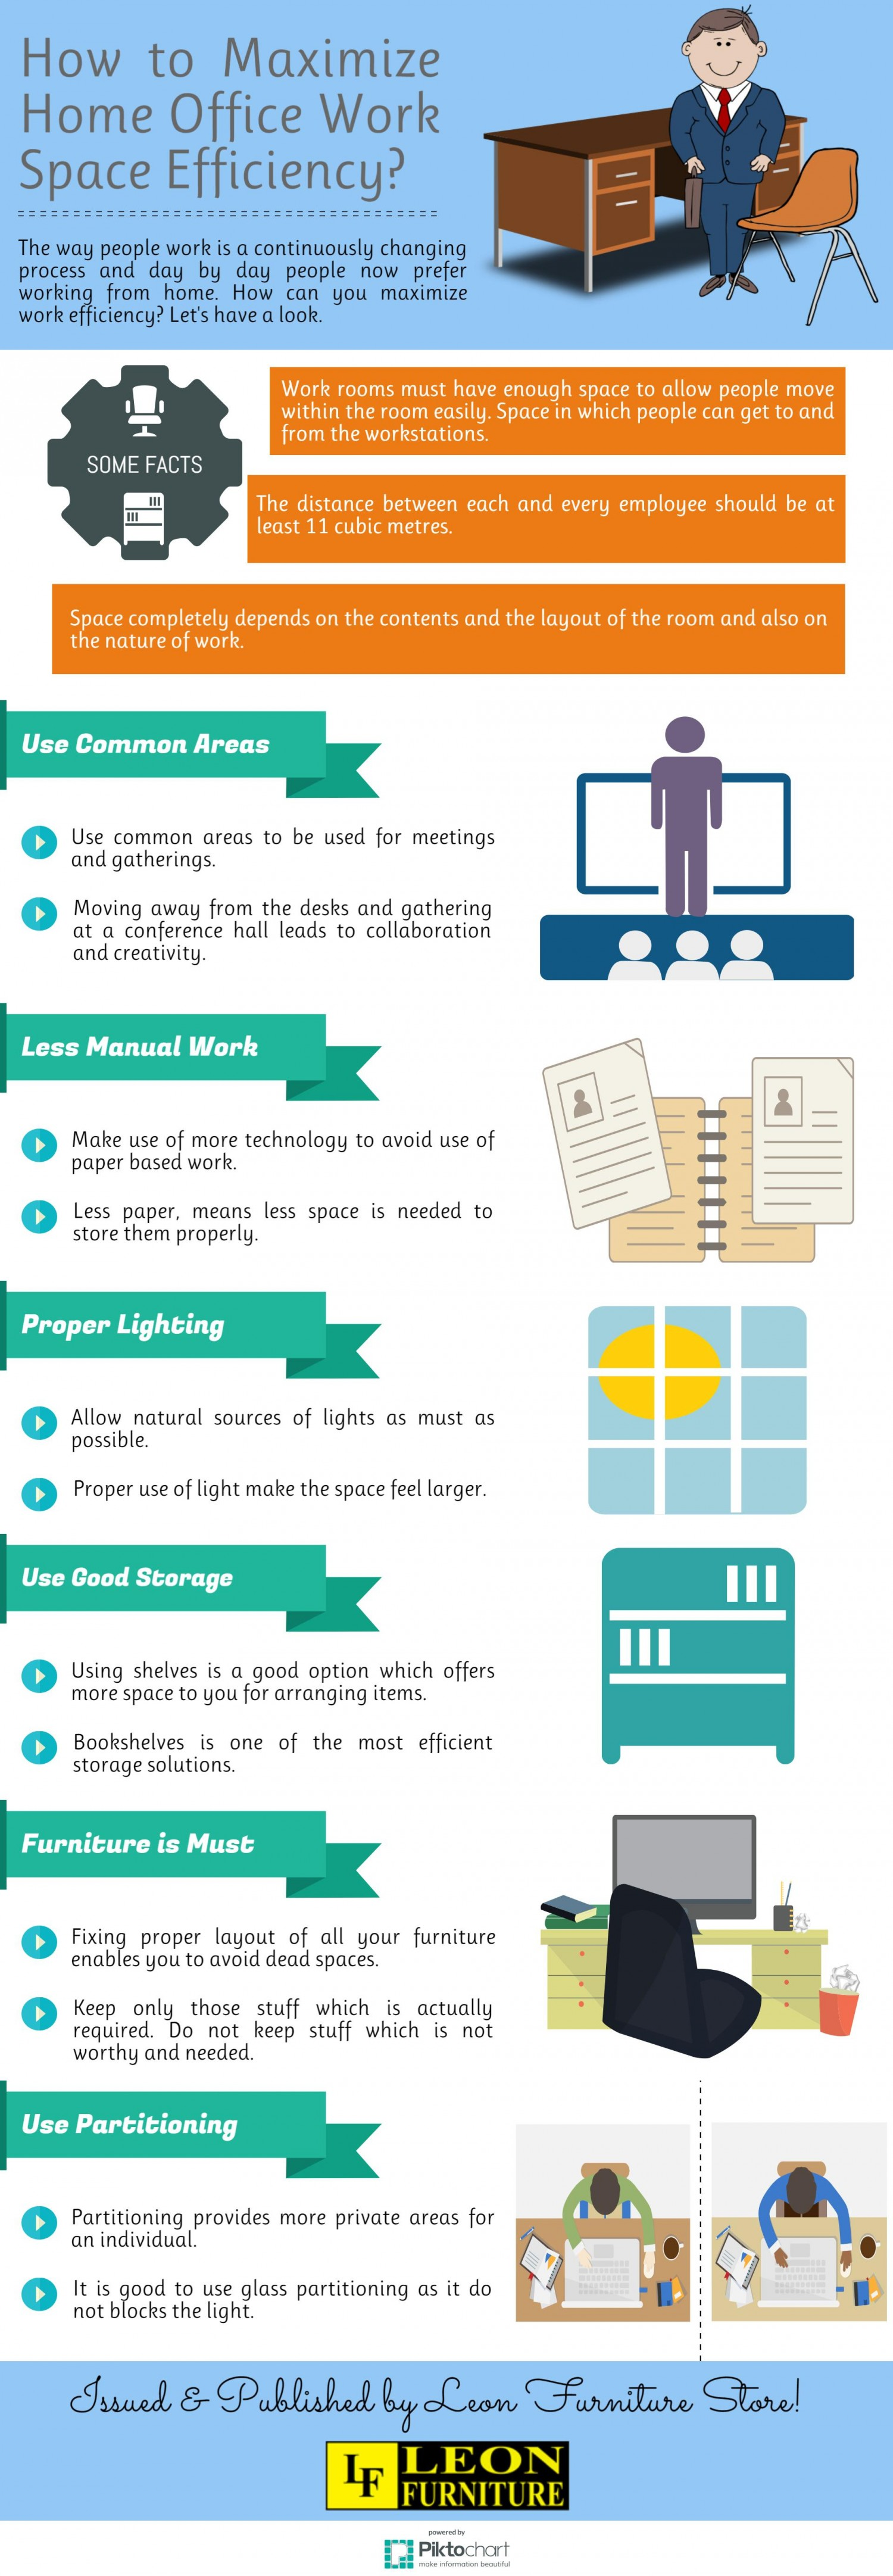 maximize home office work space